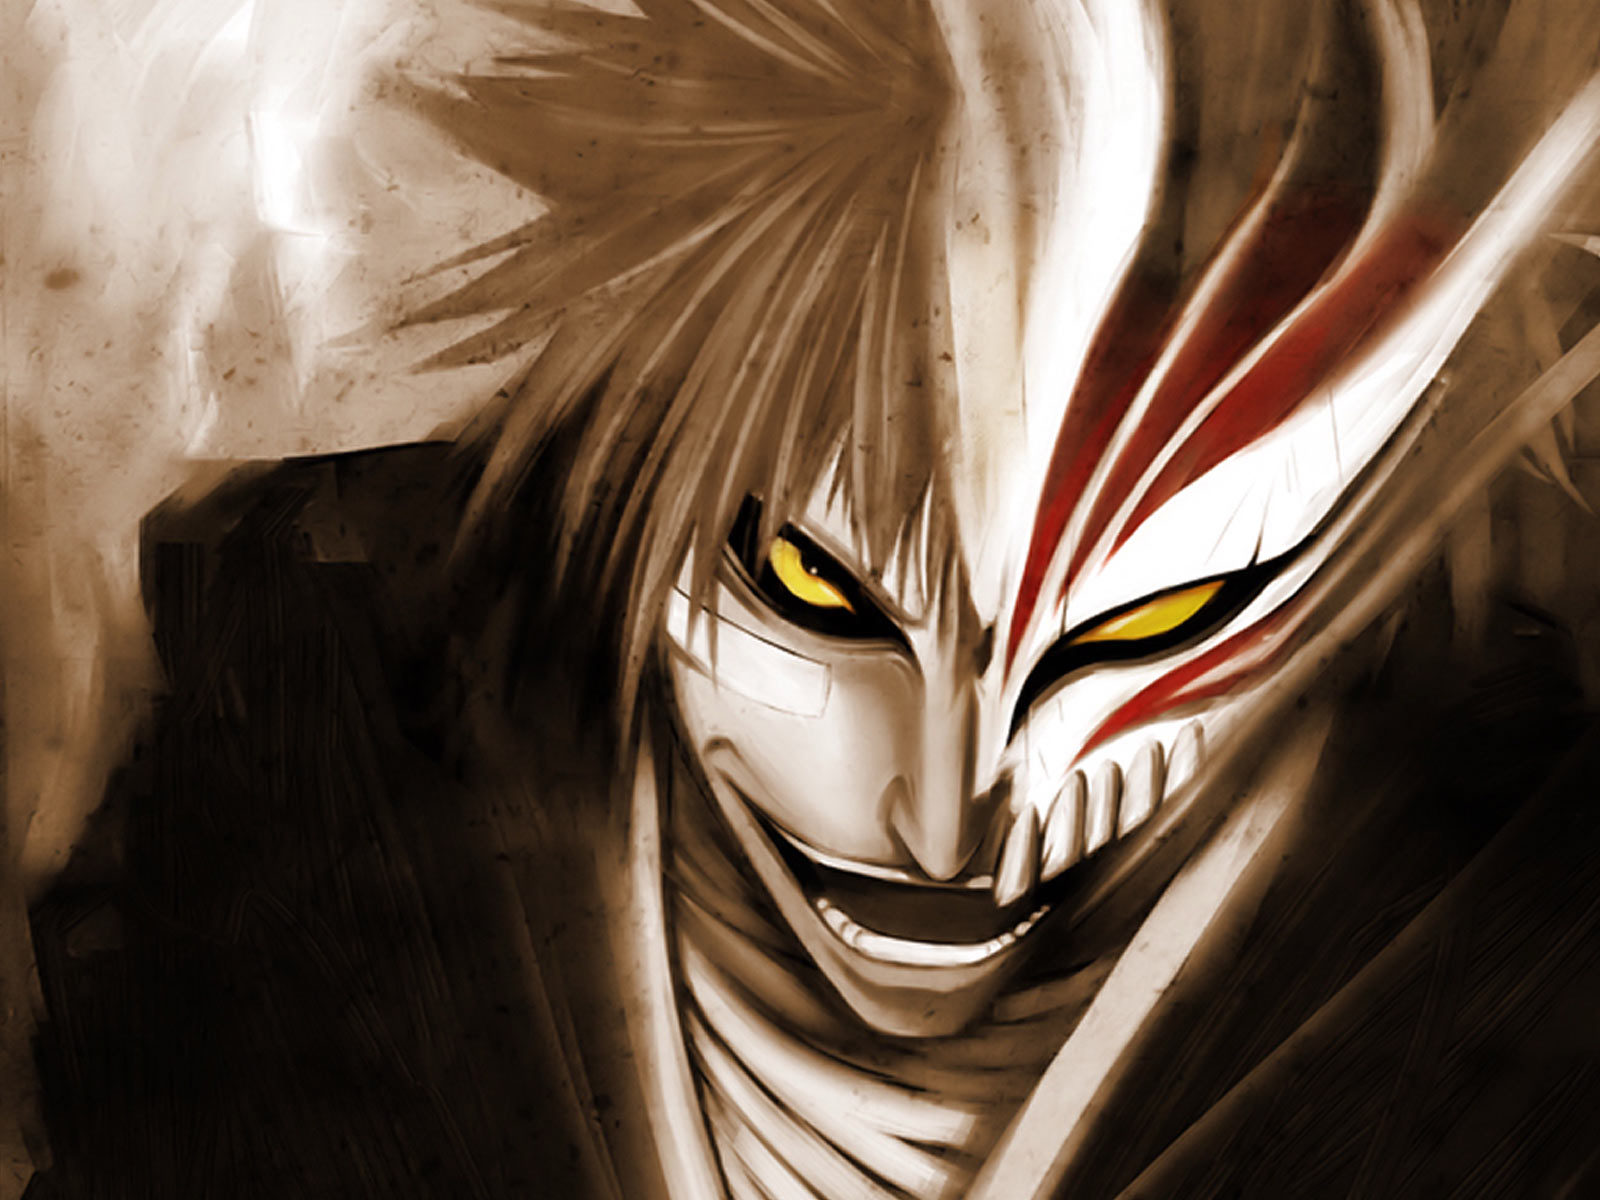 Cool Bleach Wallpapers